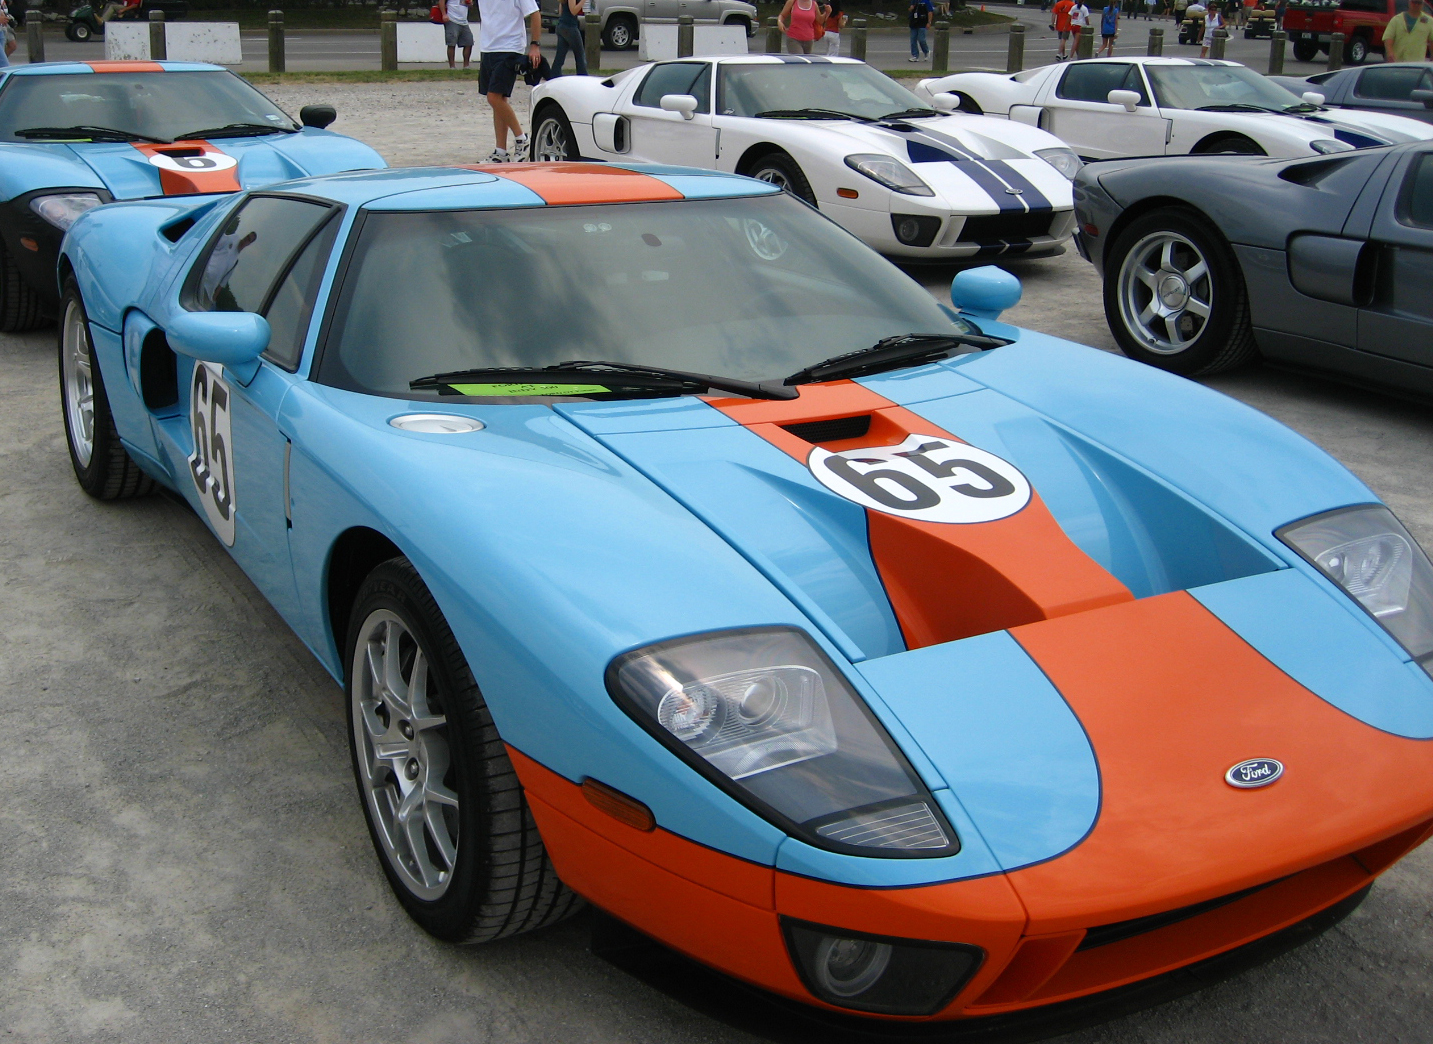 File:Ford GT Heritage.jpg - Wikimedia Commons